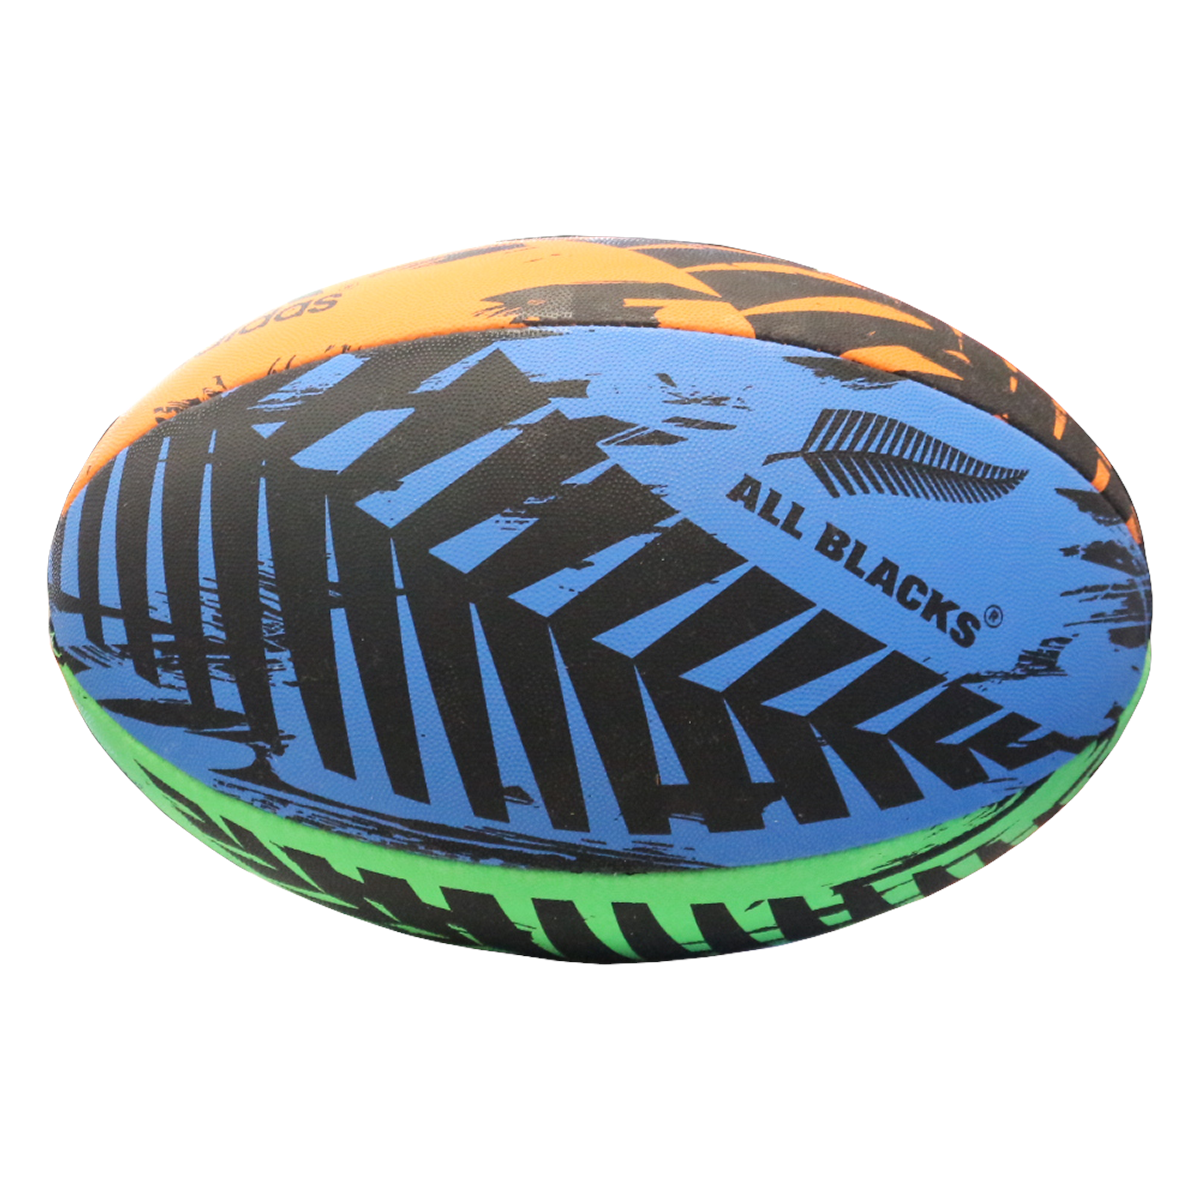 Adidas All Blacks Graphic Rugby Ball